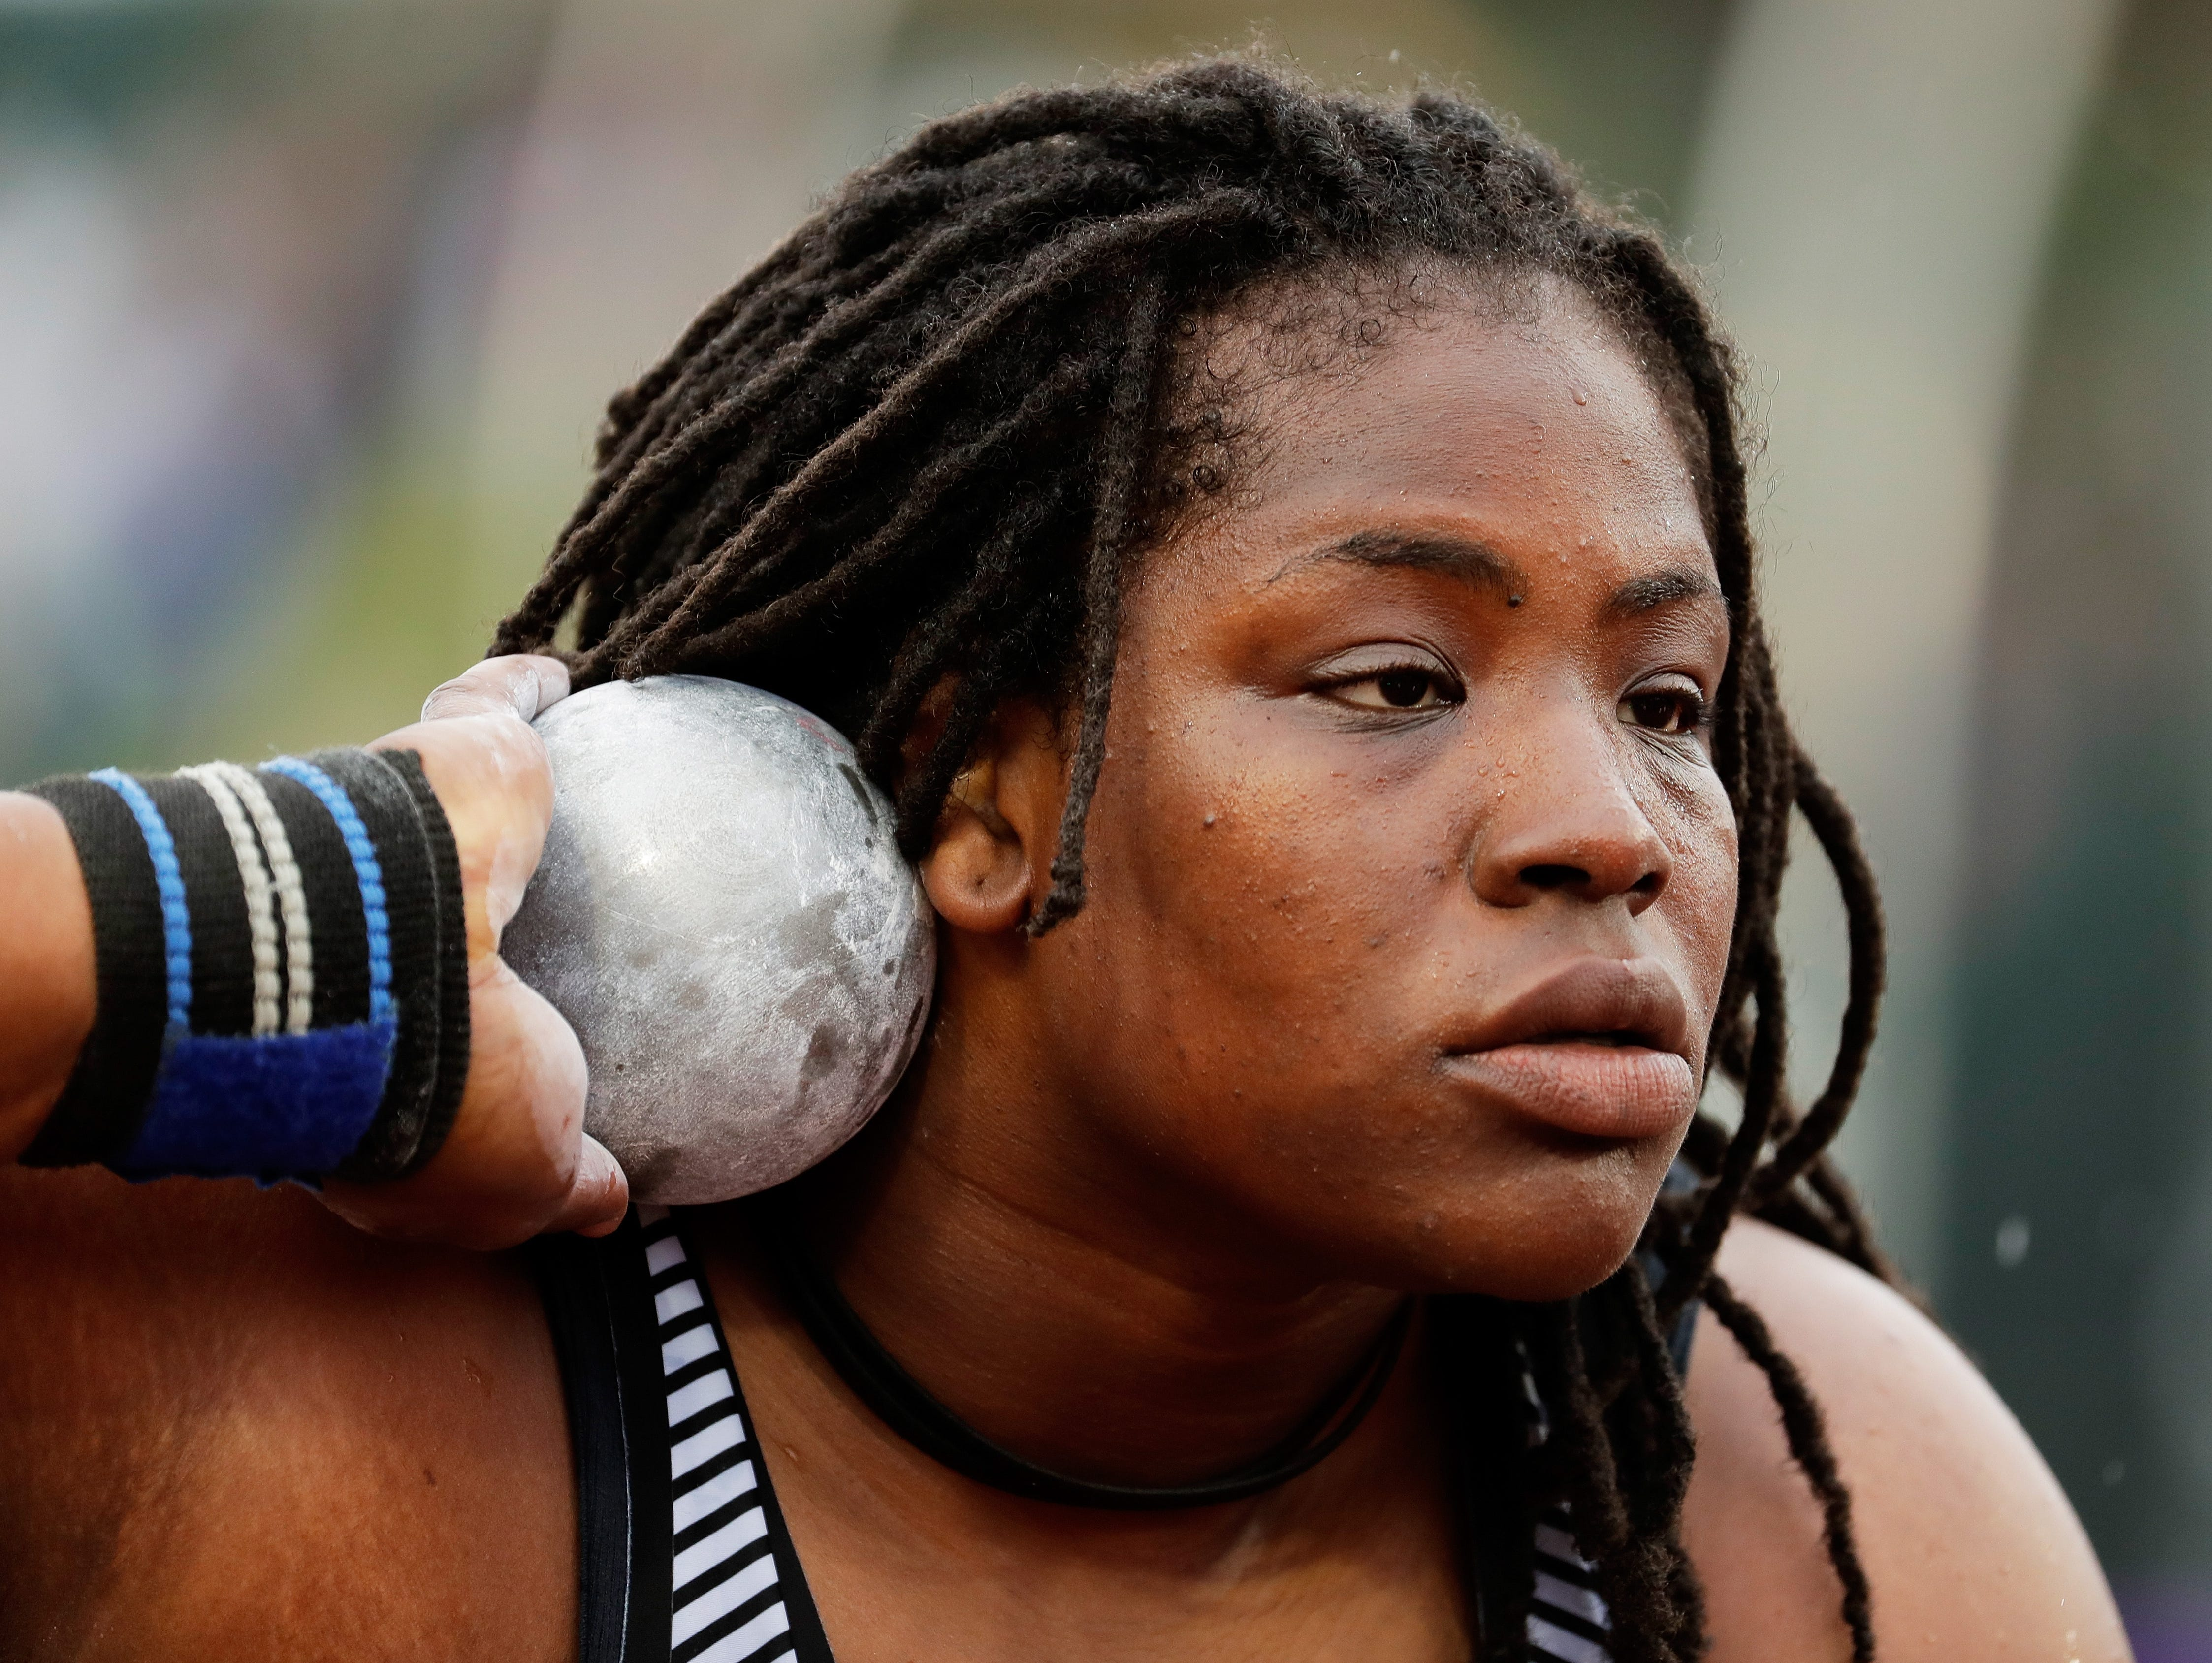 Felisha Johnson competes in the Women's Shot Put Final during the 2016 U.S. Olympic Track & Field Team Trials at Hayward Field on July 7, 2016 in Eugene, Oregon.